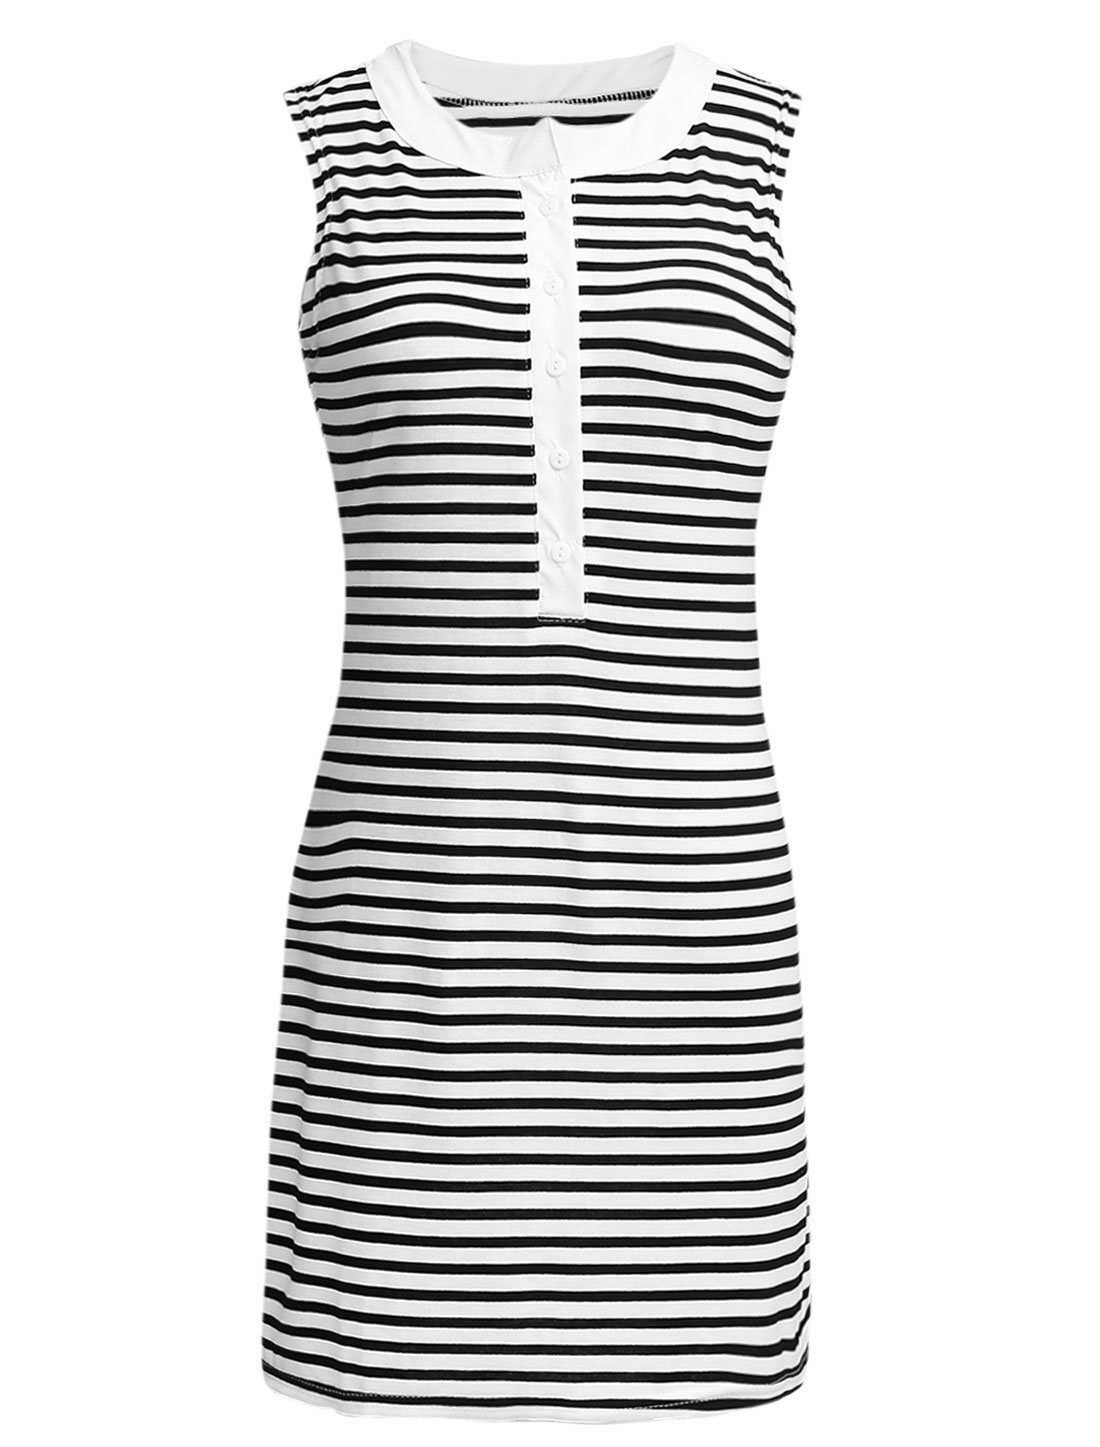 Women Stripes Buttons Closed Front Sheathy Tank Dress Black White XS